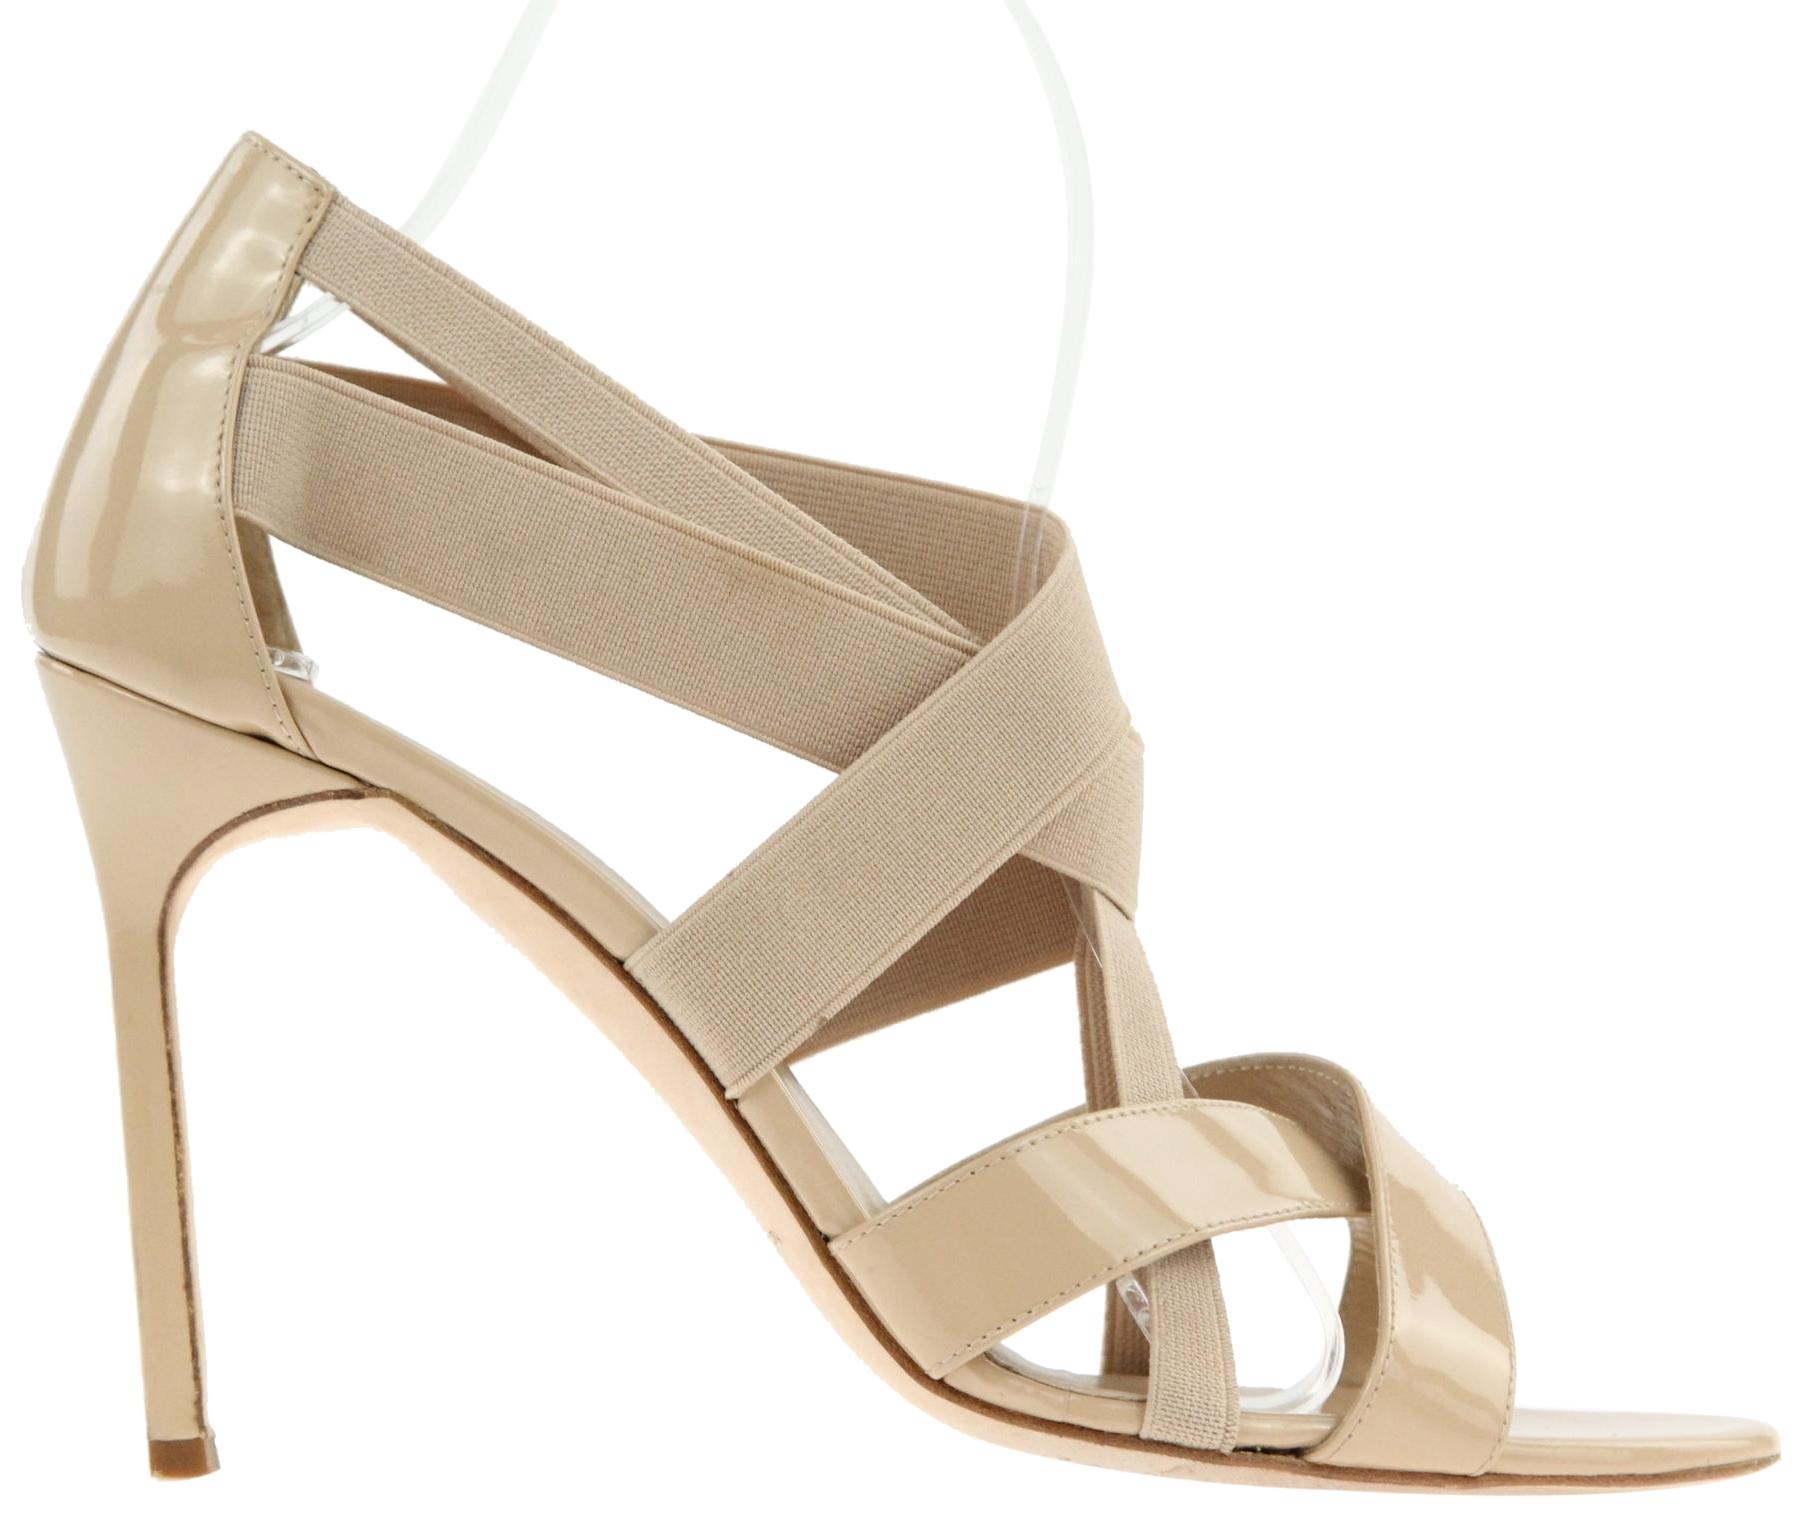 Manolo Blahnik Beige Strappy Pumps Size EU 39 (Approx. US 9) Regular (M, B)